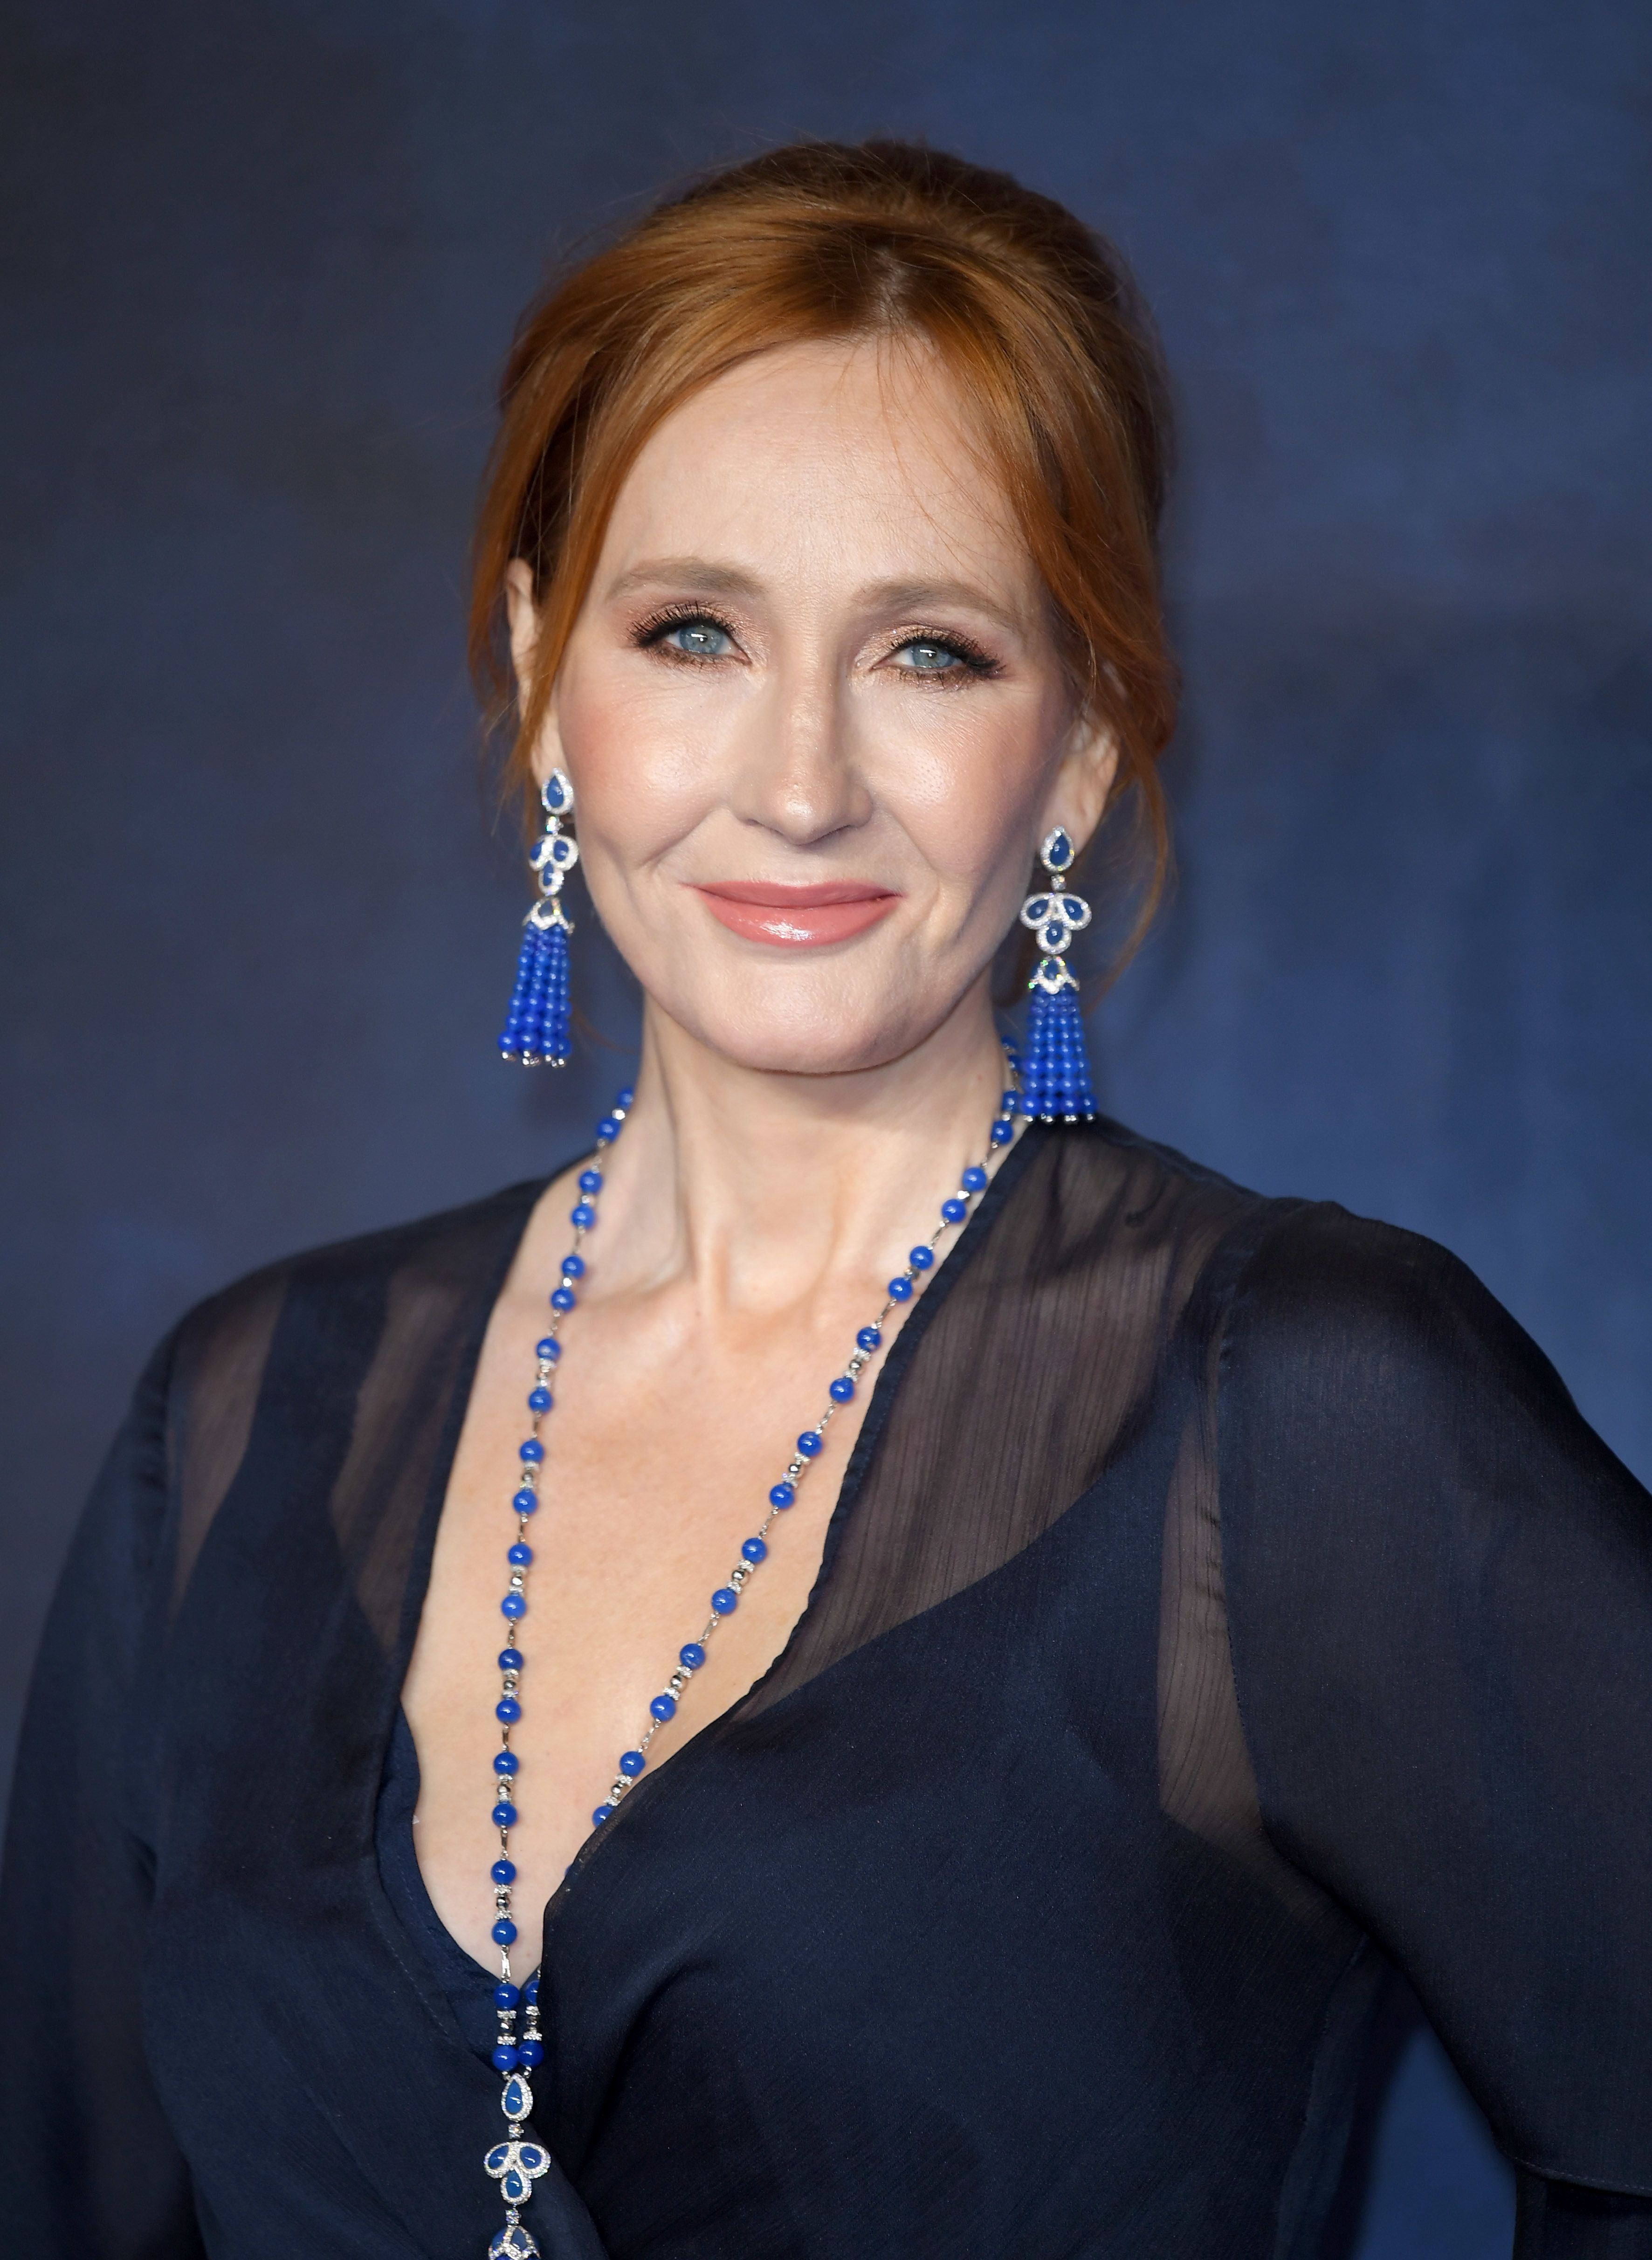 LONDON, ENGLAND - NOVEMBER 13:  J. K. Rowling attends the UK Premiere of 'Fantastic Beasts: The Crimes Of Grindelwald' at Cineworld Leicester Square on November 13, 2018 in London, England.  (Photo by Karwai Tang/WireImage)